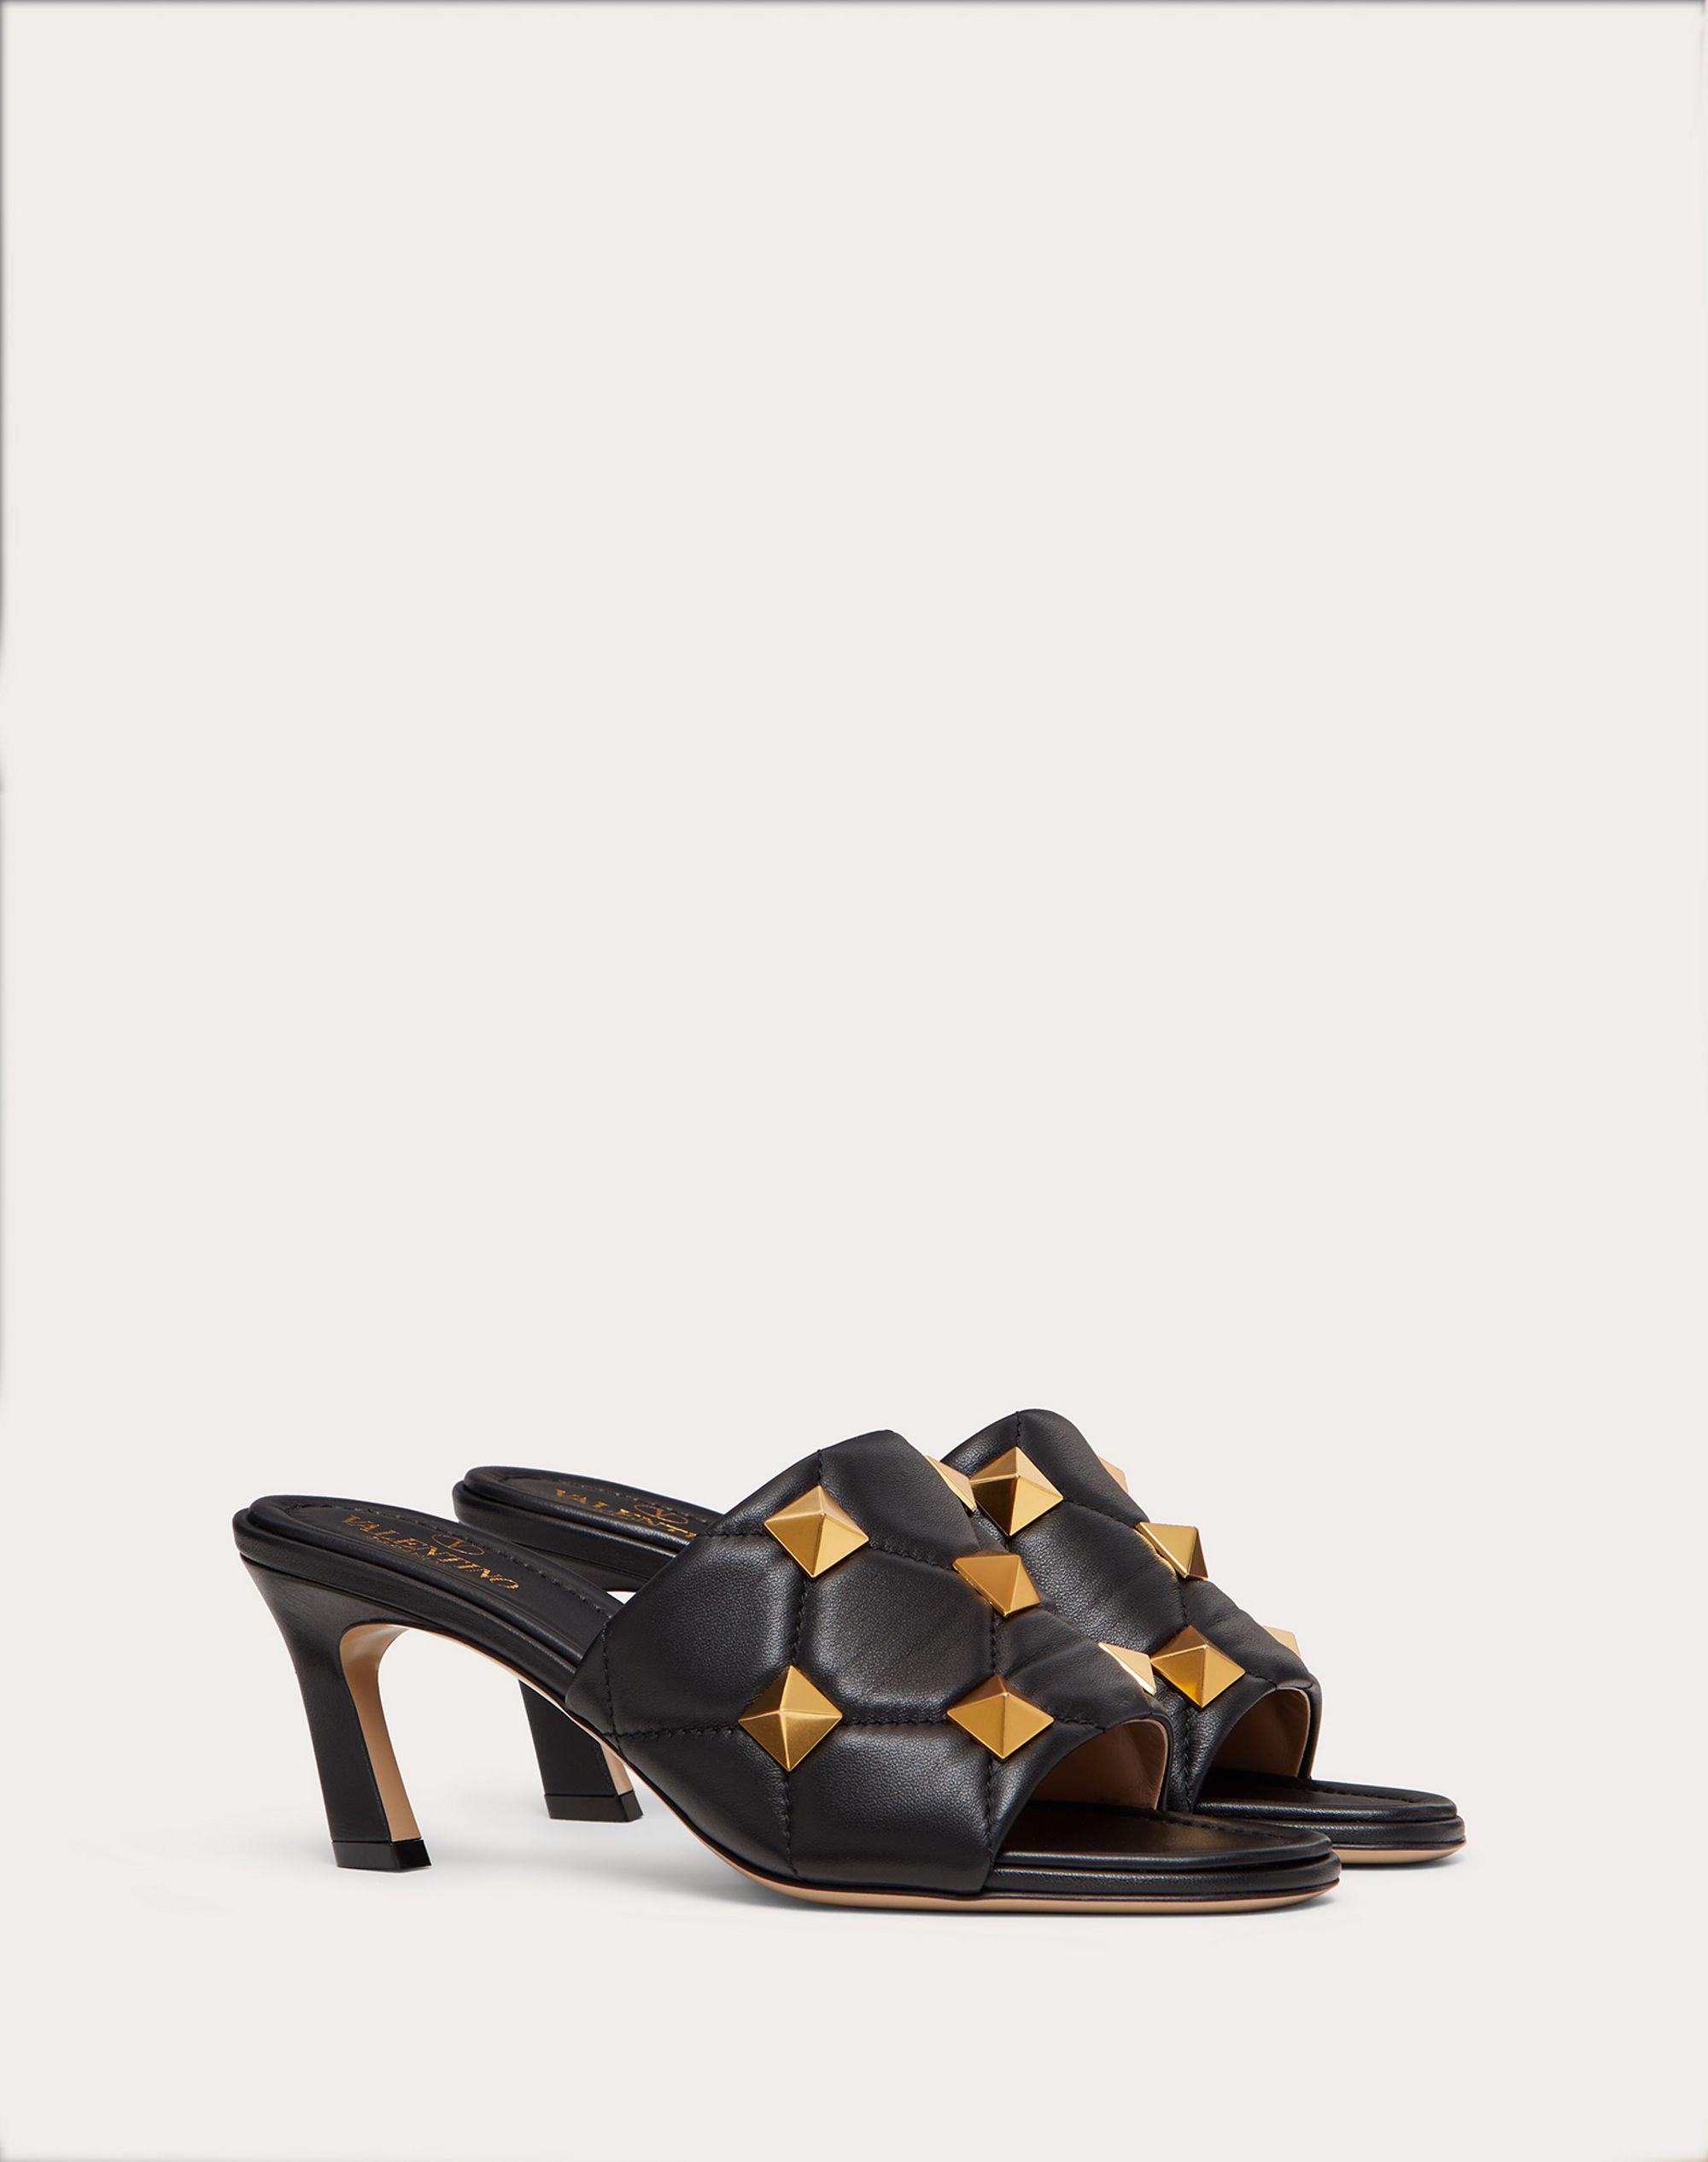 ROMAN STUD SLIDE SANDAL IN QUILTED NAPPA 65 MM 1